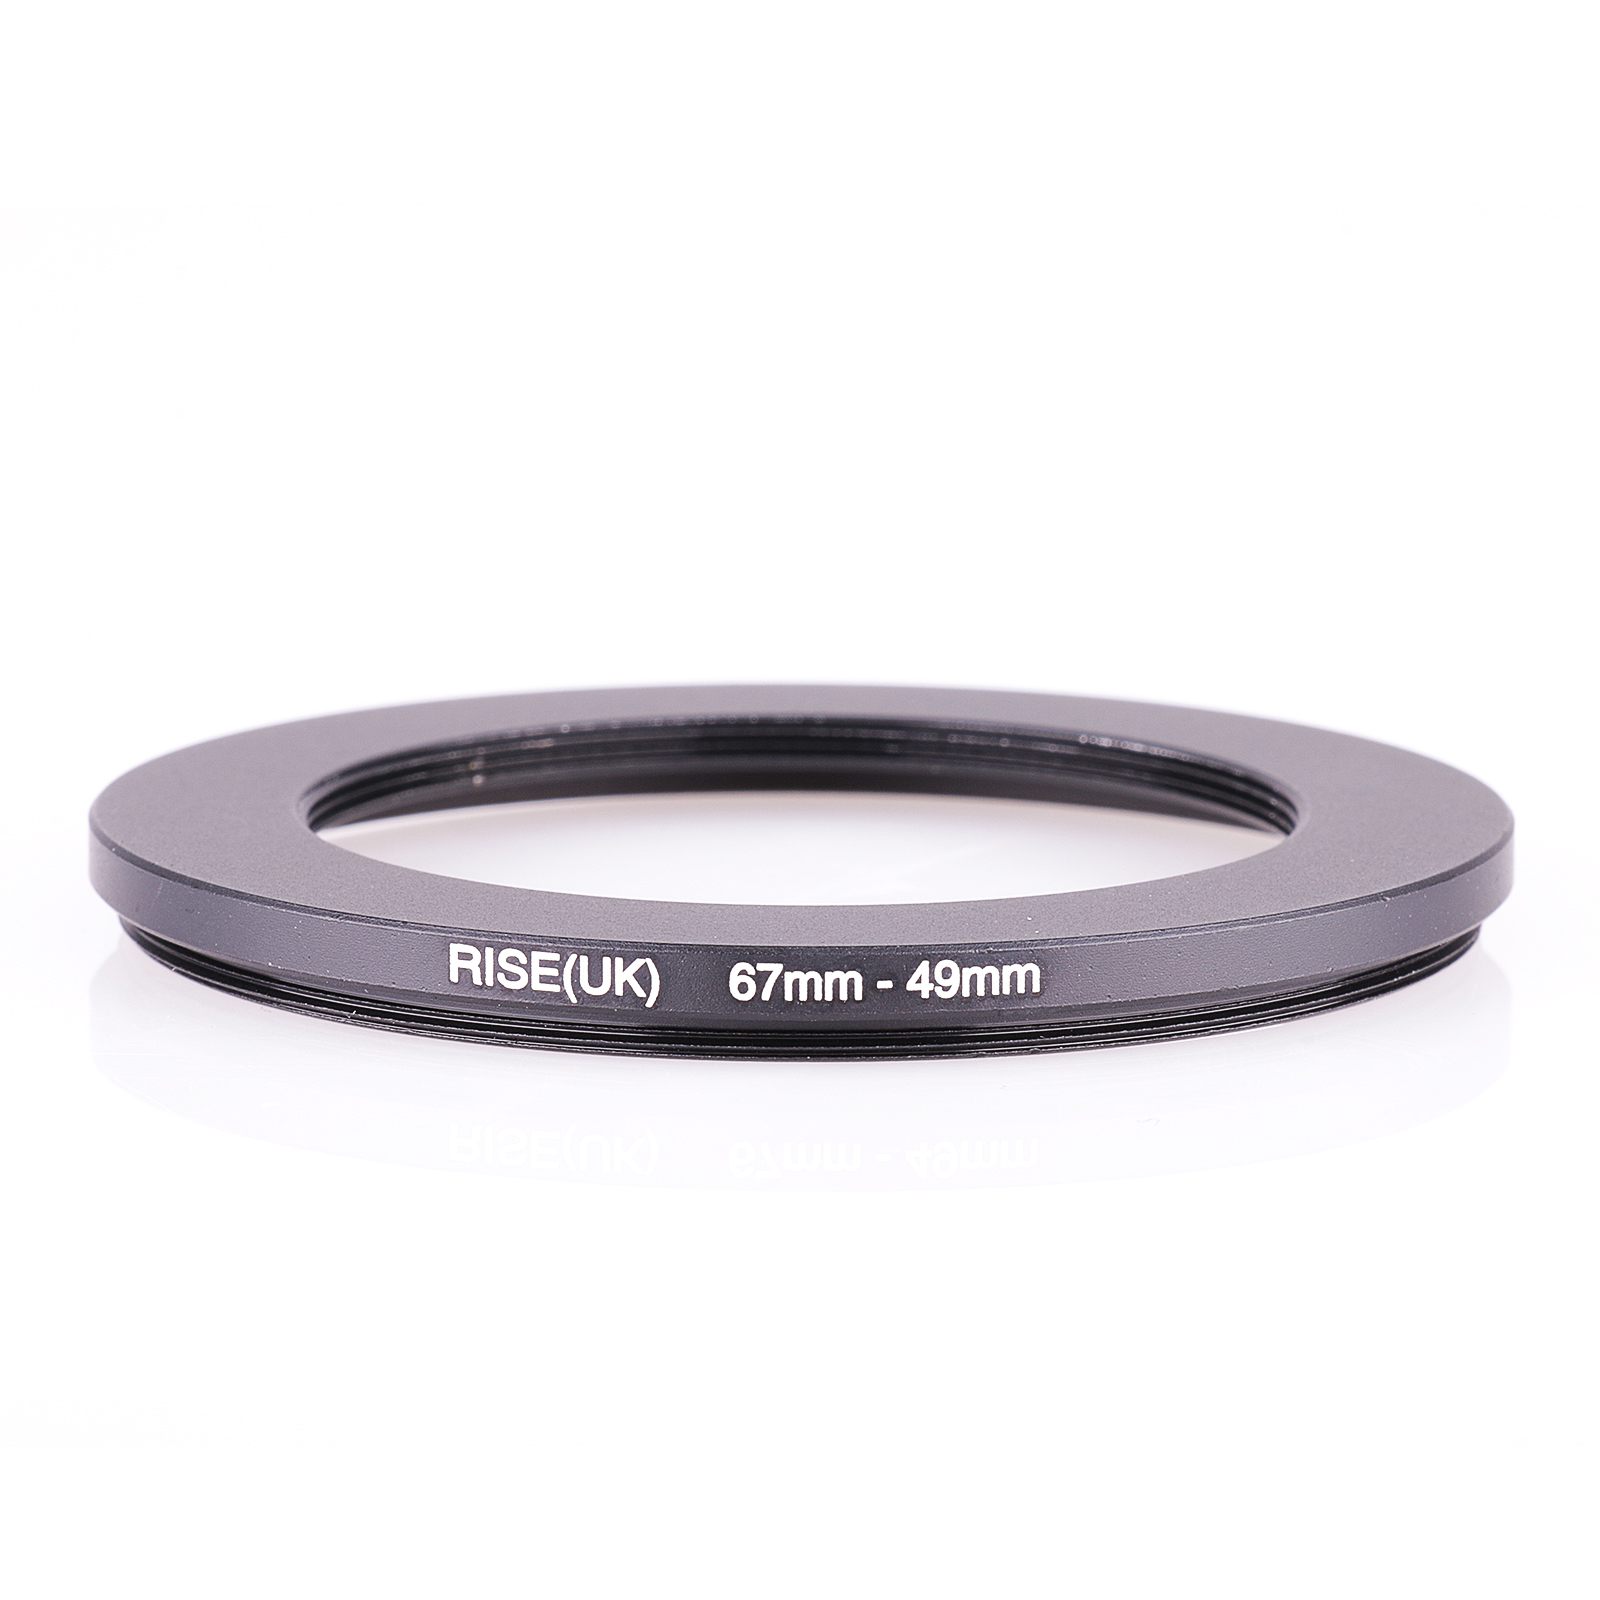 RISE(UK) 67mm-49mm 67-49 Mm 67 To 49 Step Down Filter Ring Adapter